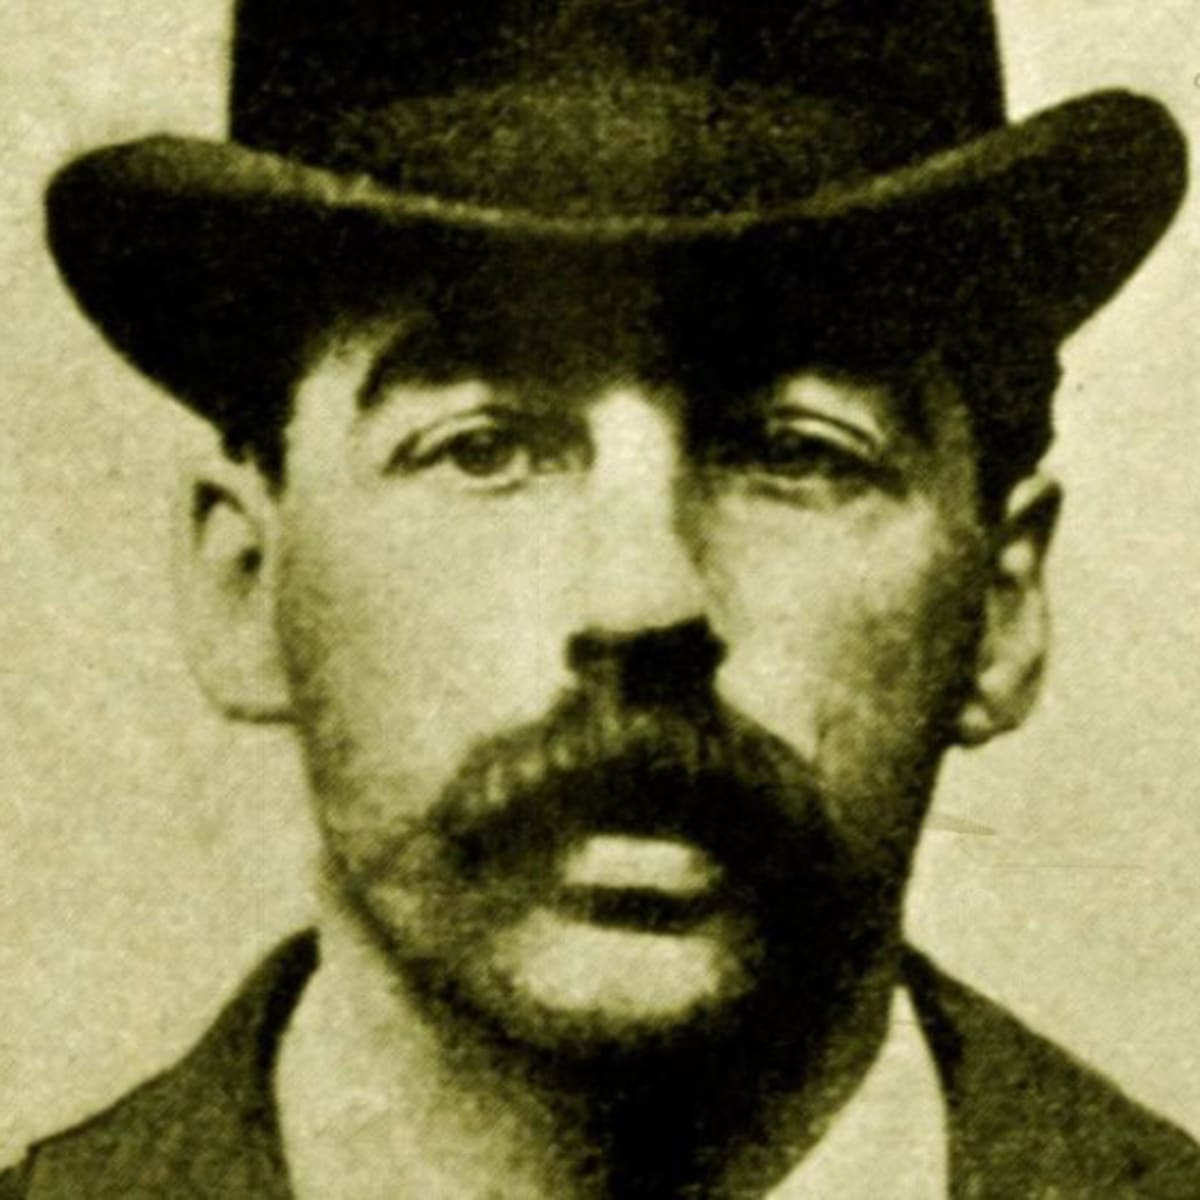 hh holmes jack the ripper